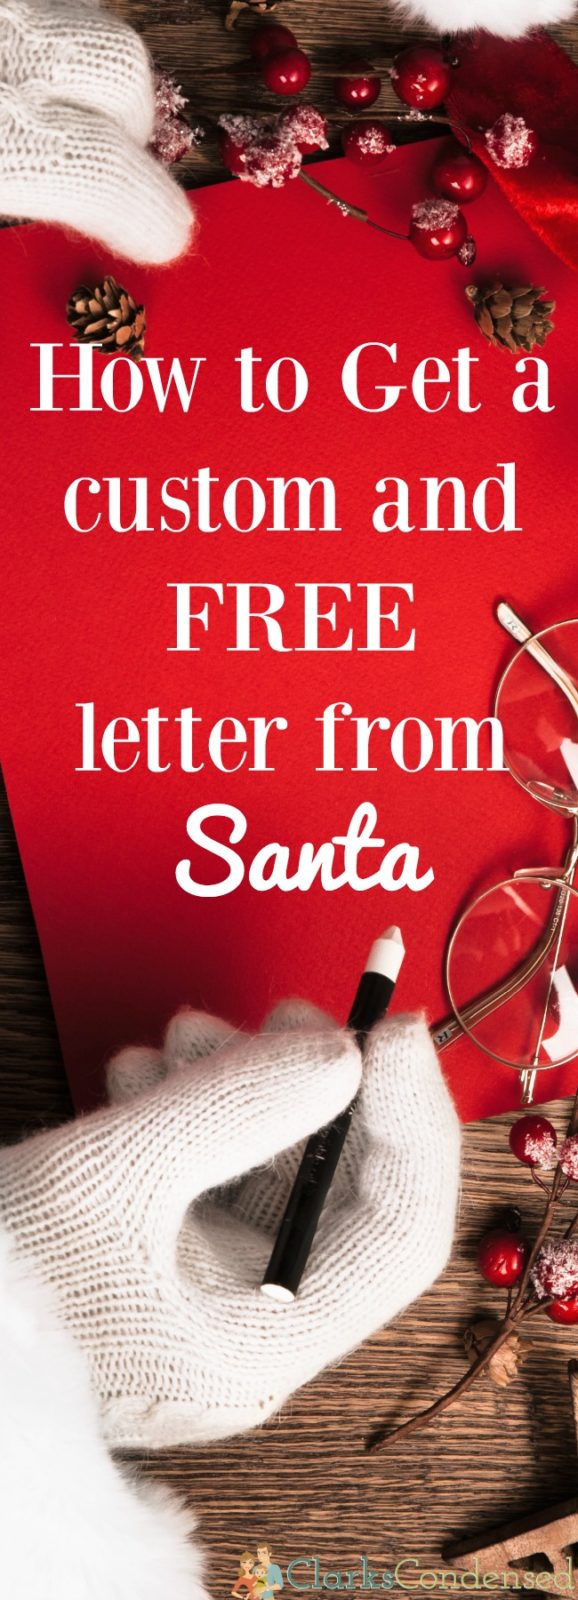 This is so cute! My son would love this - you can get a custom and free letter from Santa from this site. So fun.